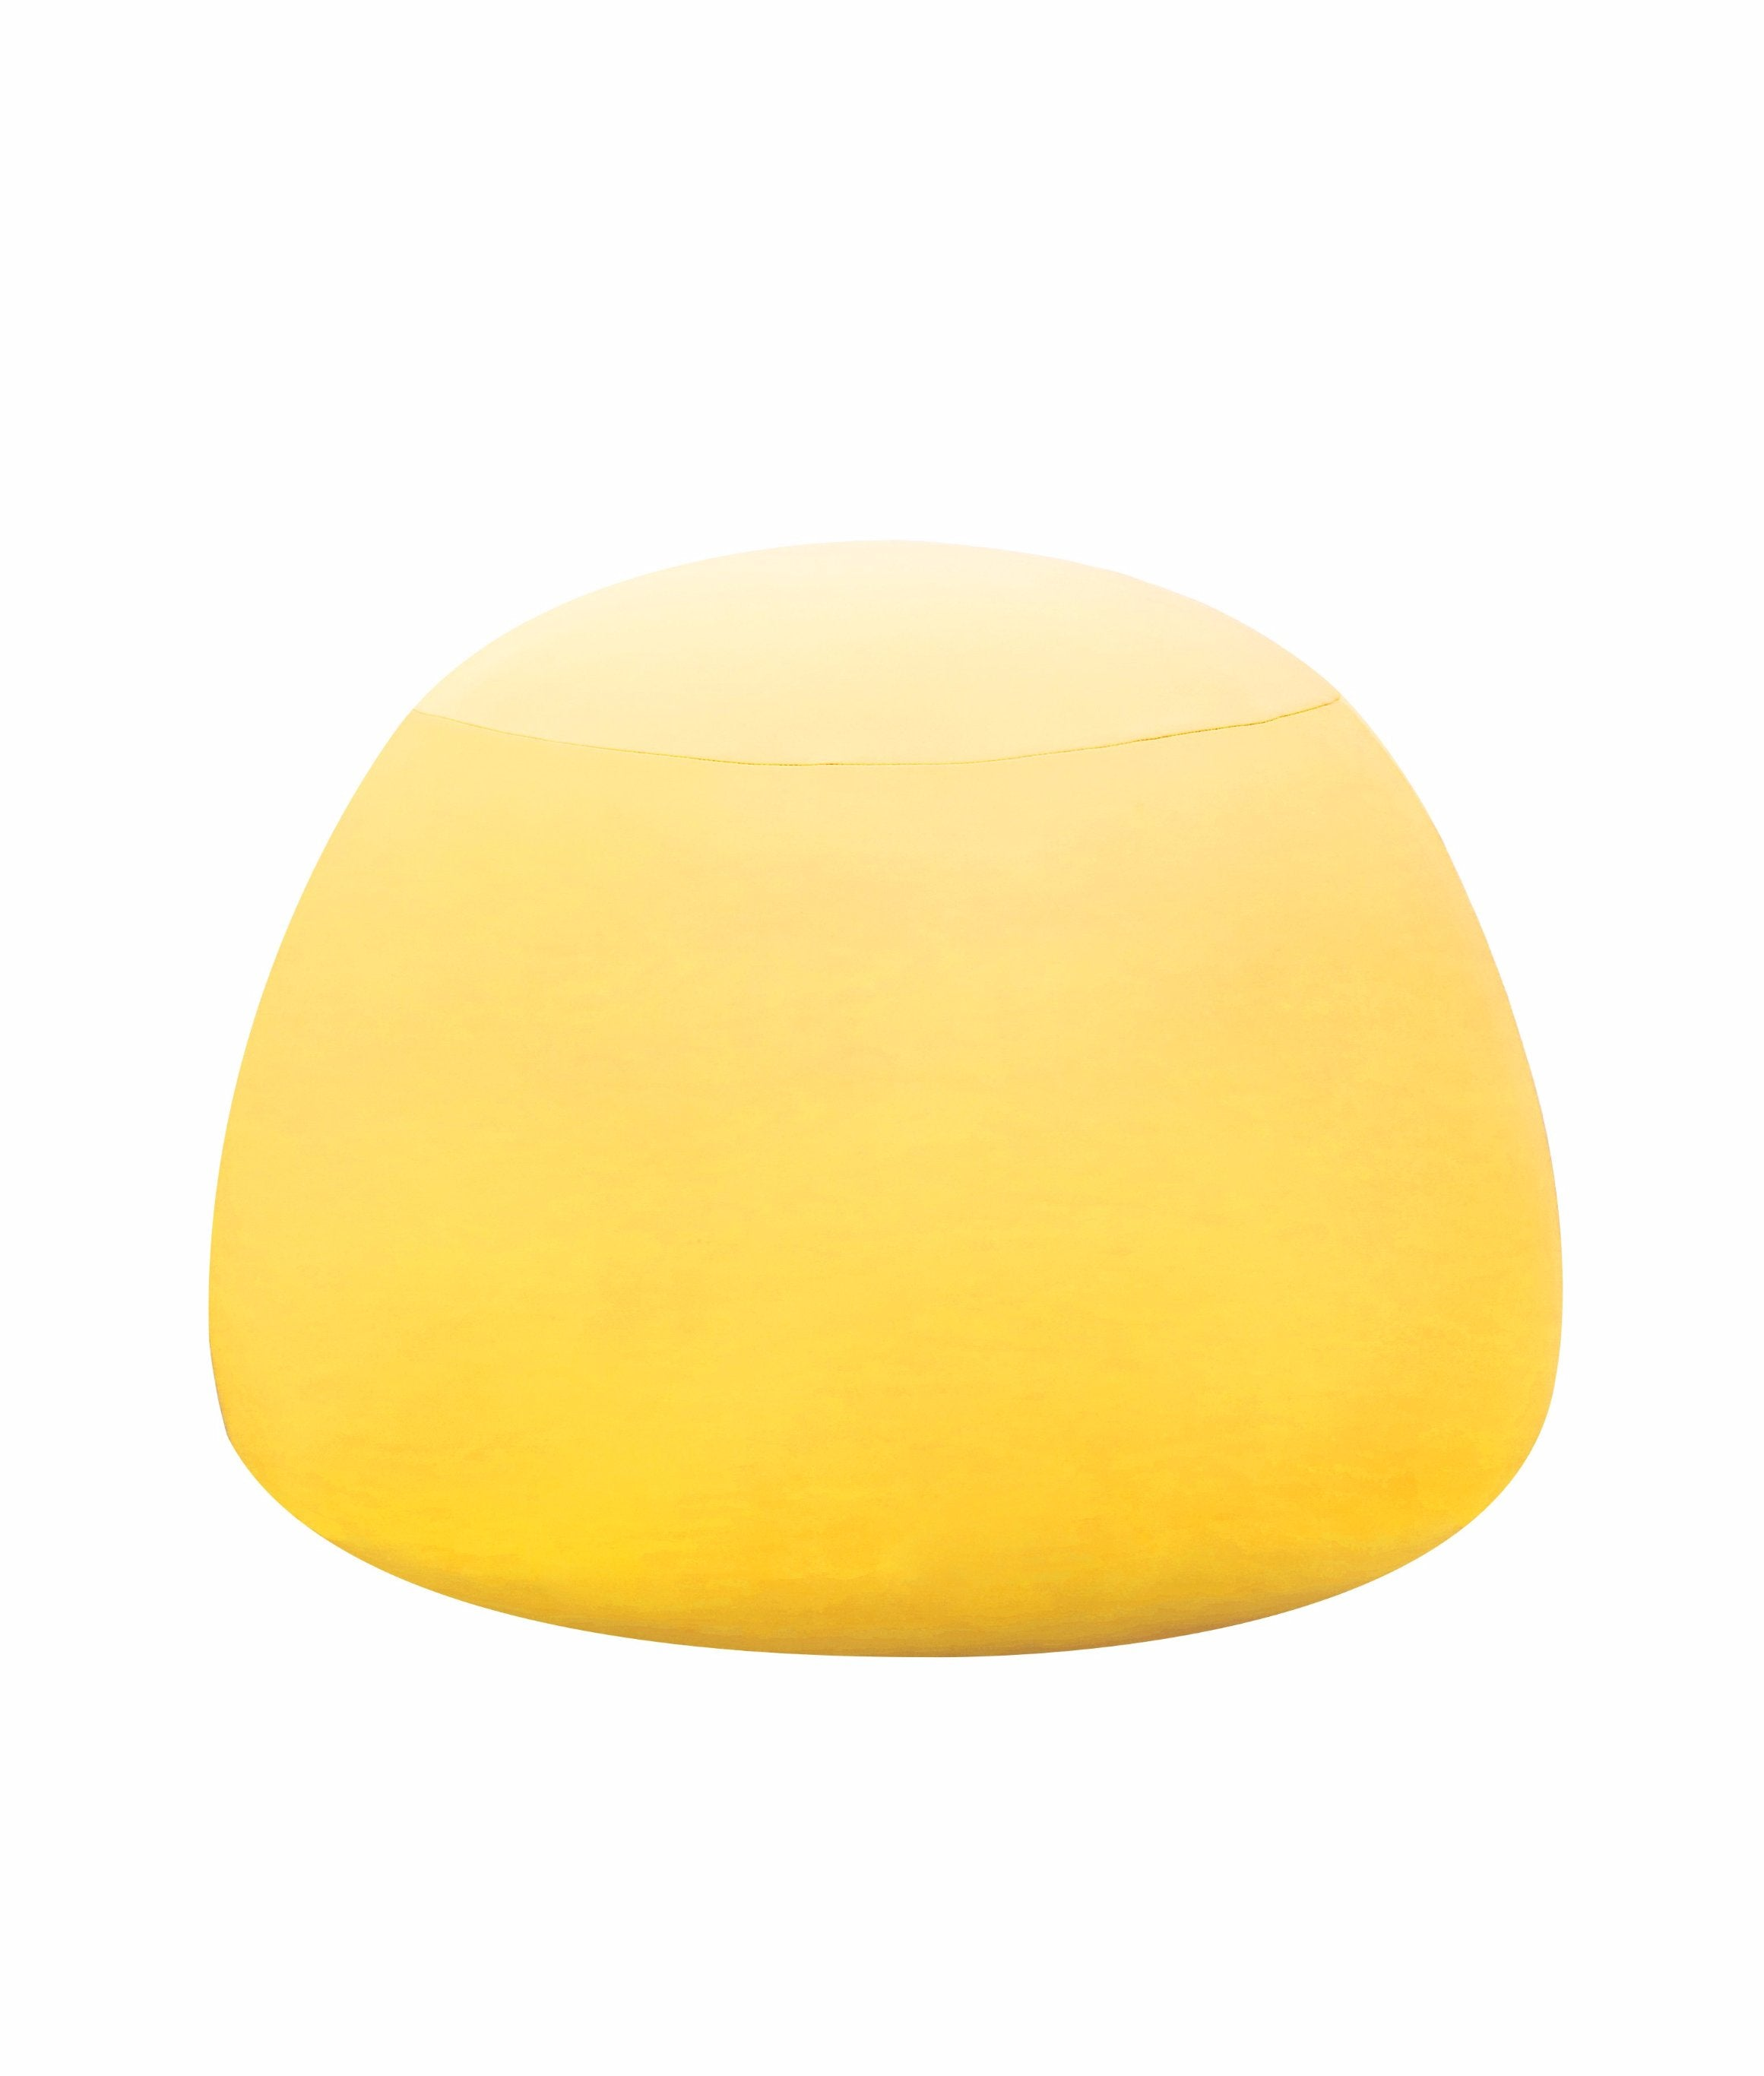 POTiiiN BEAN BAG lemon